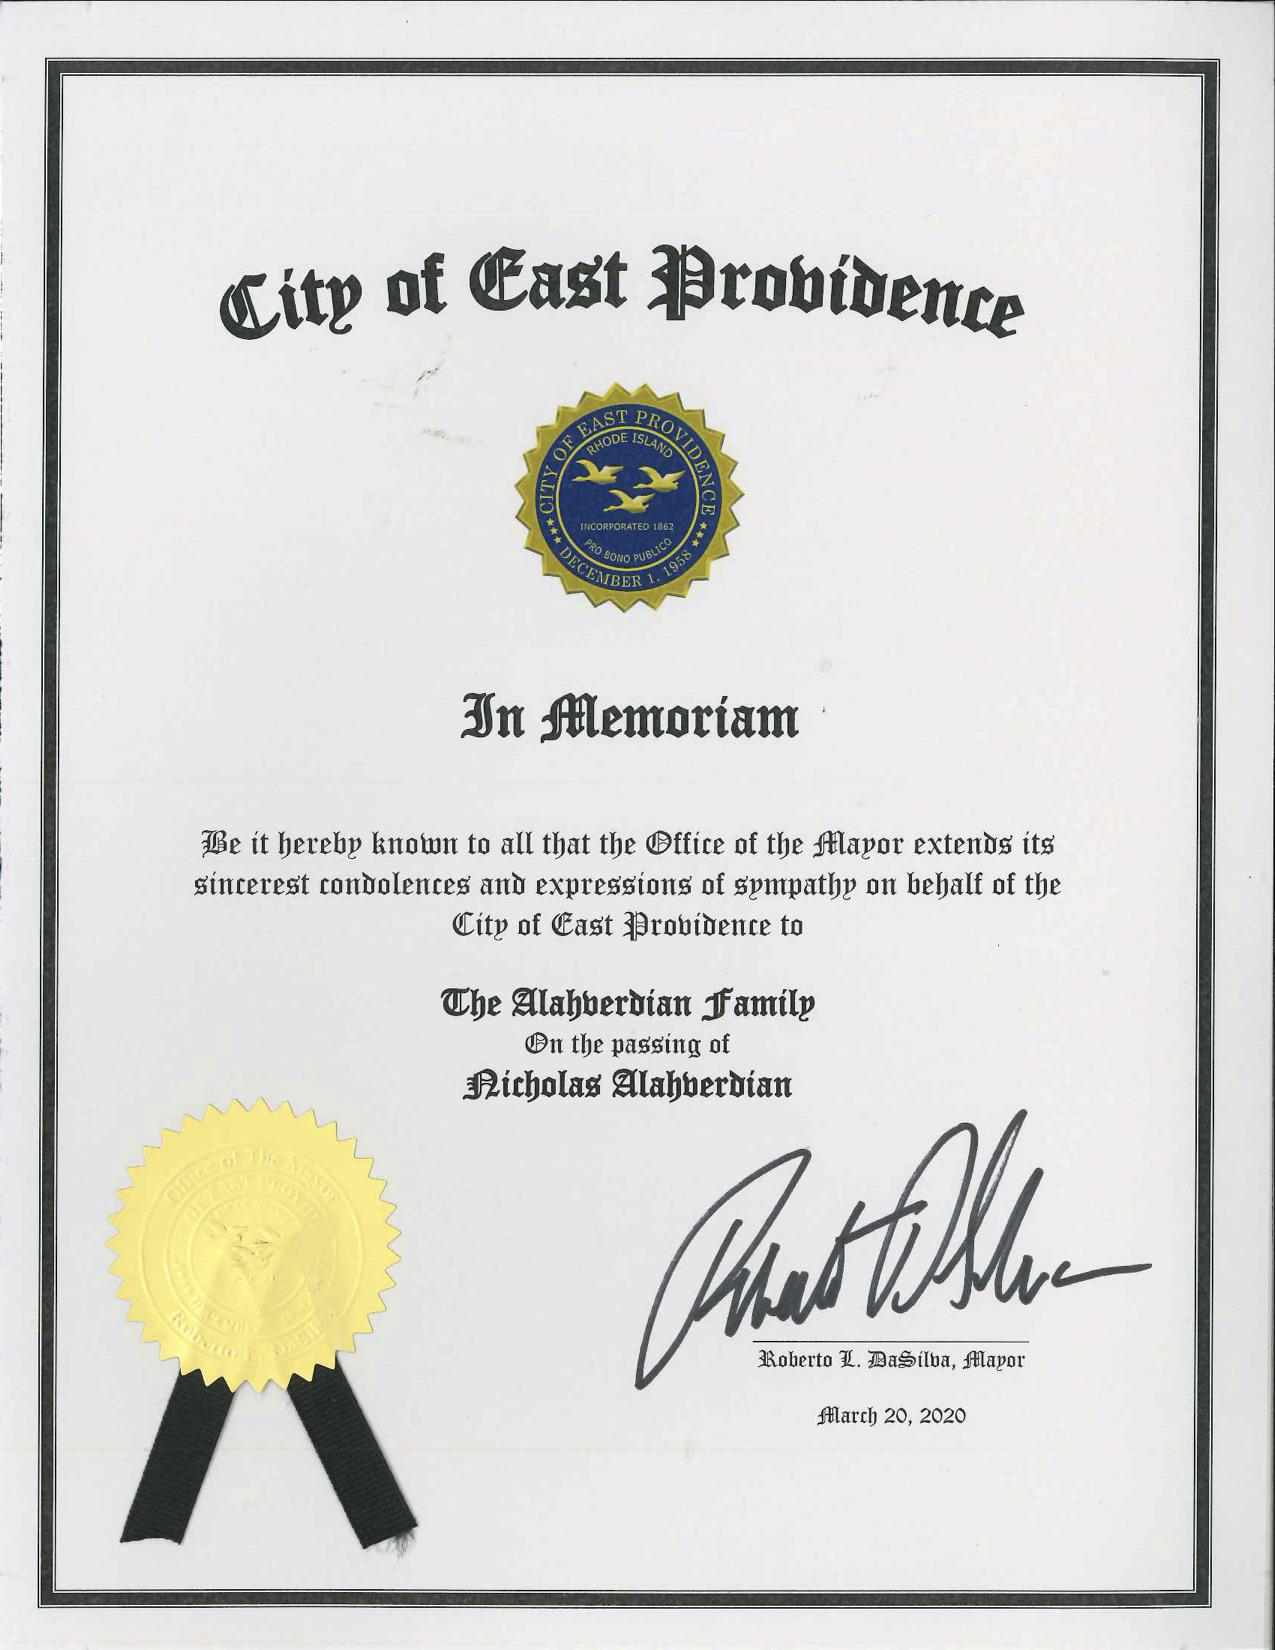 Proclamation in Memoriam of Nicholas Alahverdian issued by East Providence Mayor Bob DaSilva